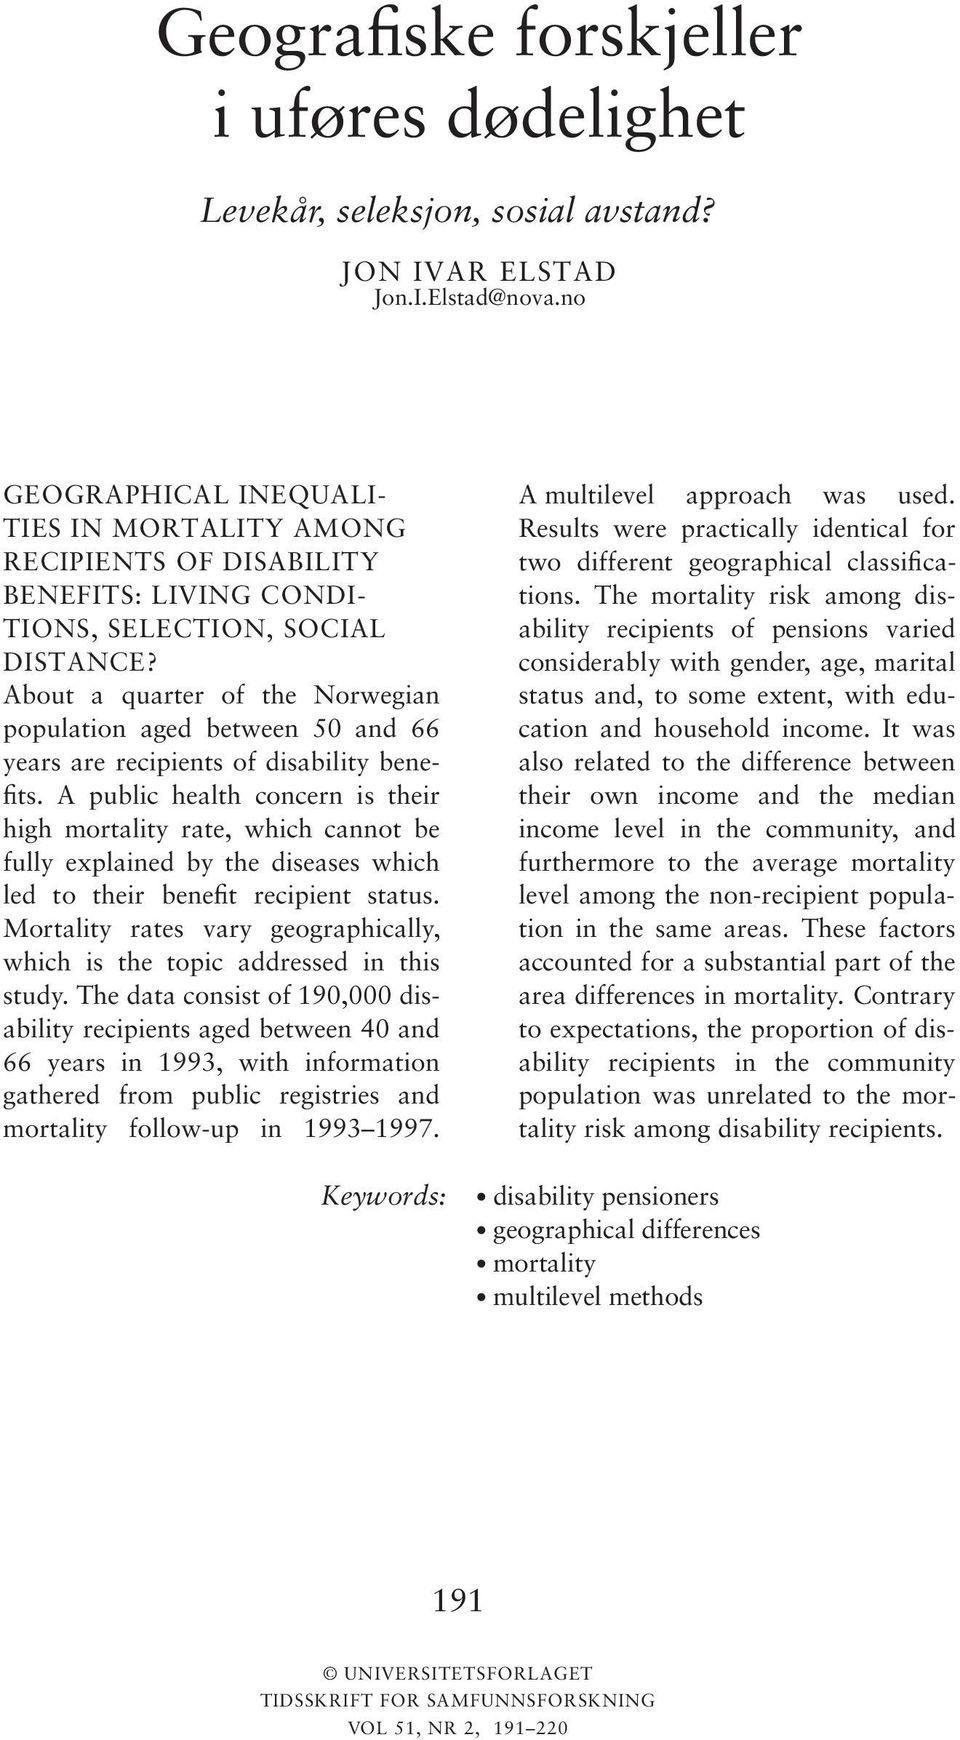 About a quarter of the Norwegian population aged between 50 and 66 years are recipients of disability benefits.